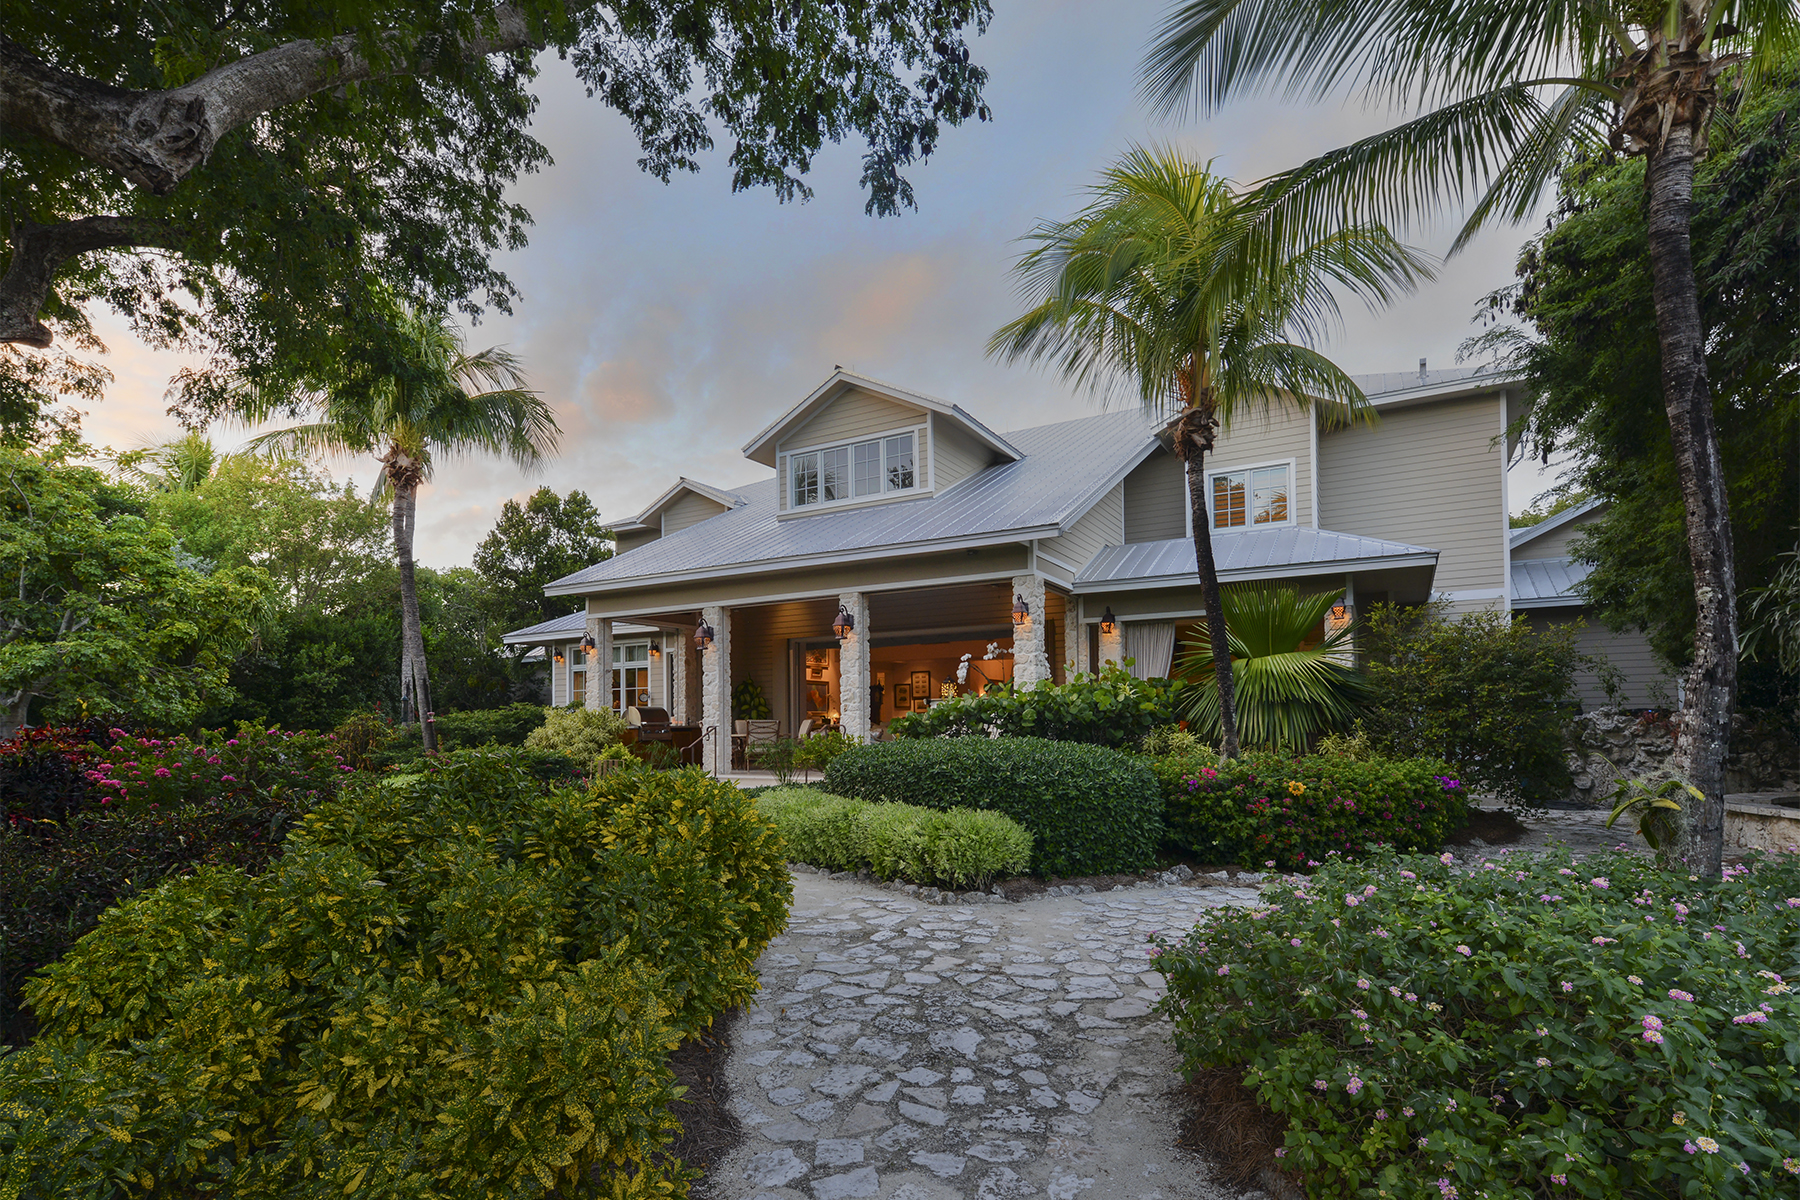 Single Family Home for Sale at Custom Lakefront Home at Key Largo Anglers Club 72 West Lake Road Key Largo, Florida, 33037 United States